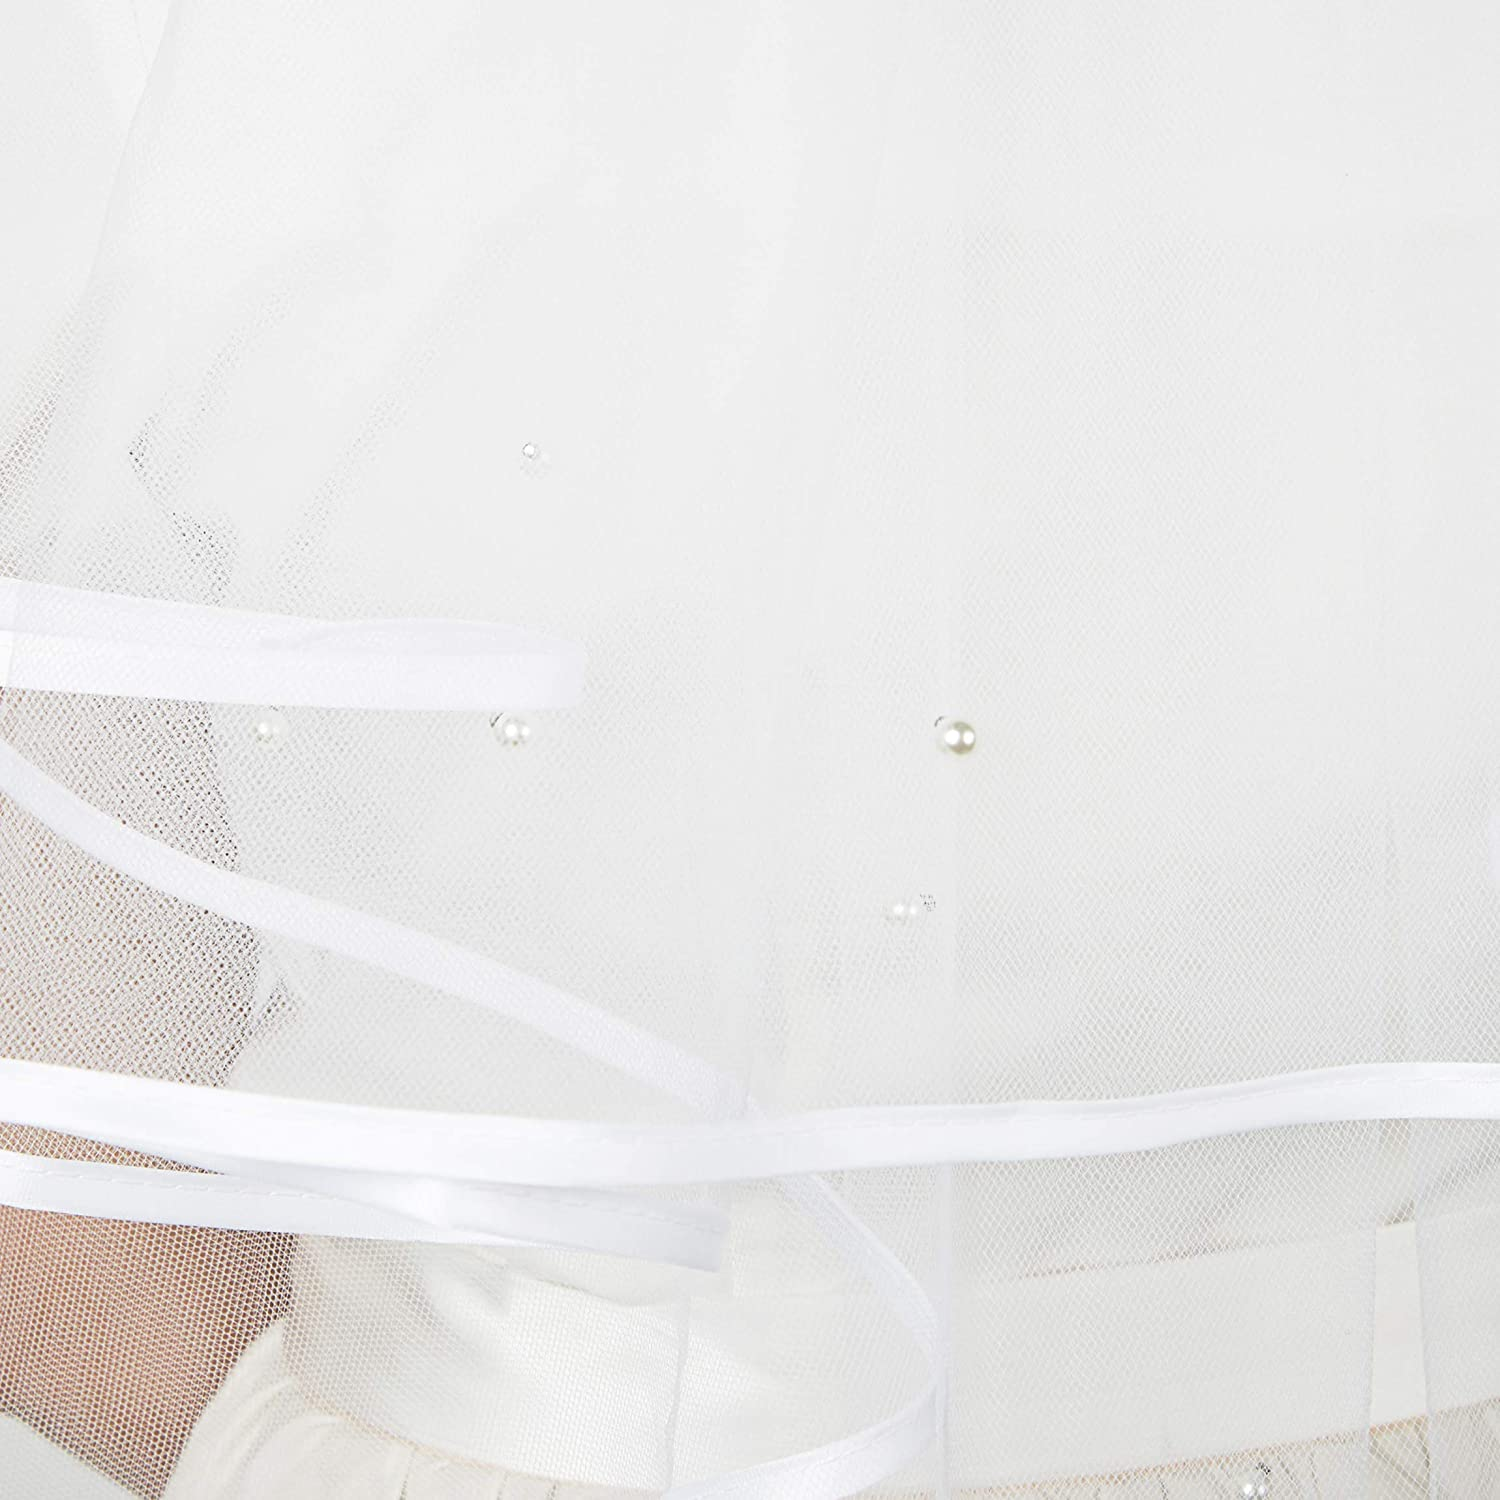 30 In White Bridal Wedding Veil with Crystals 2 Tier Veil for ...